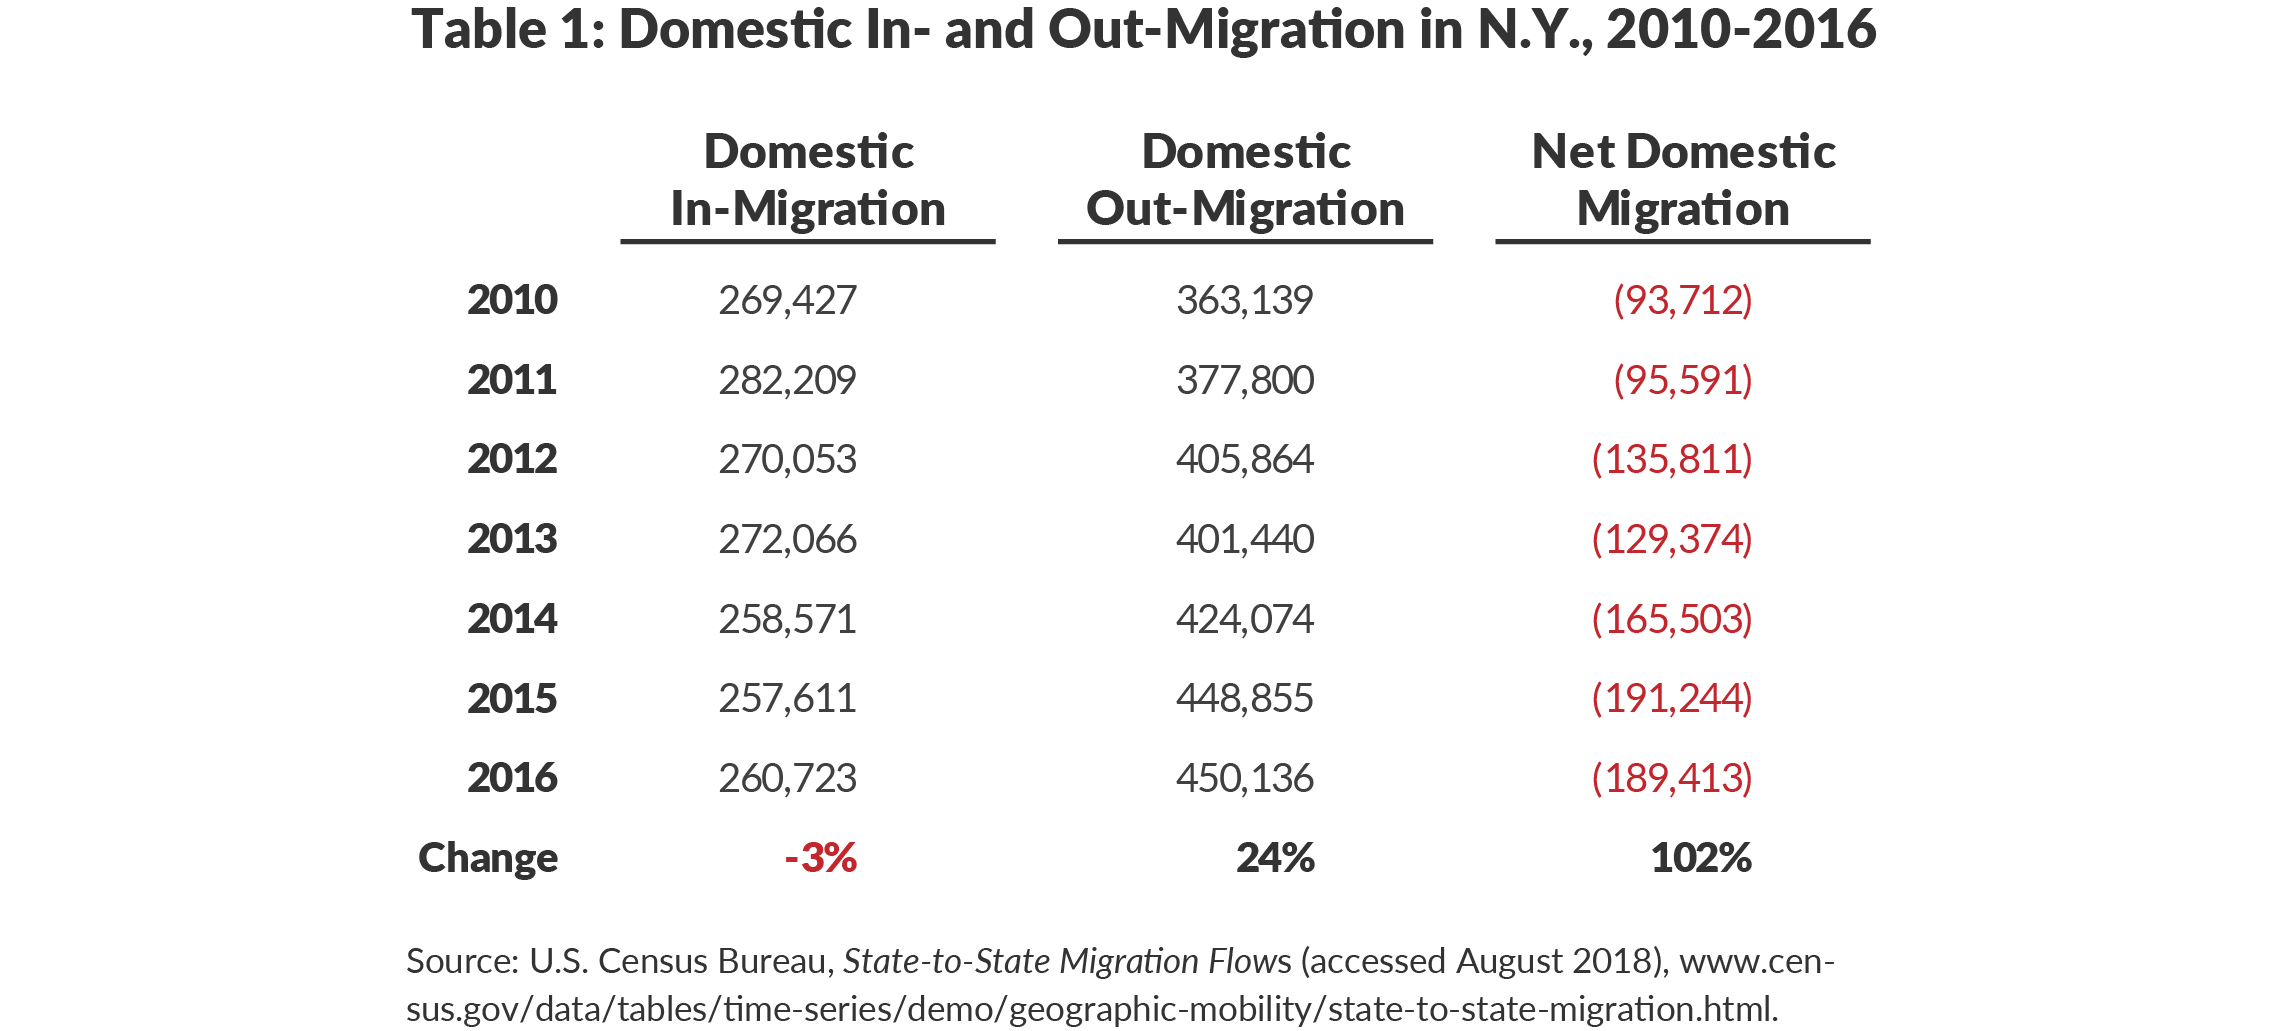 Table 1: Domestic In- and Out-Migration in N.Y., 2010-2016